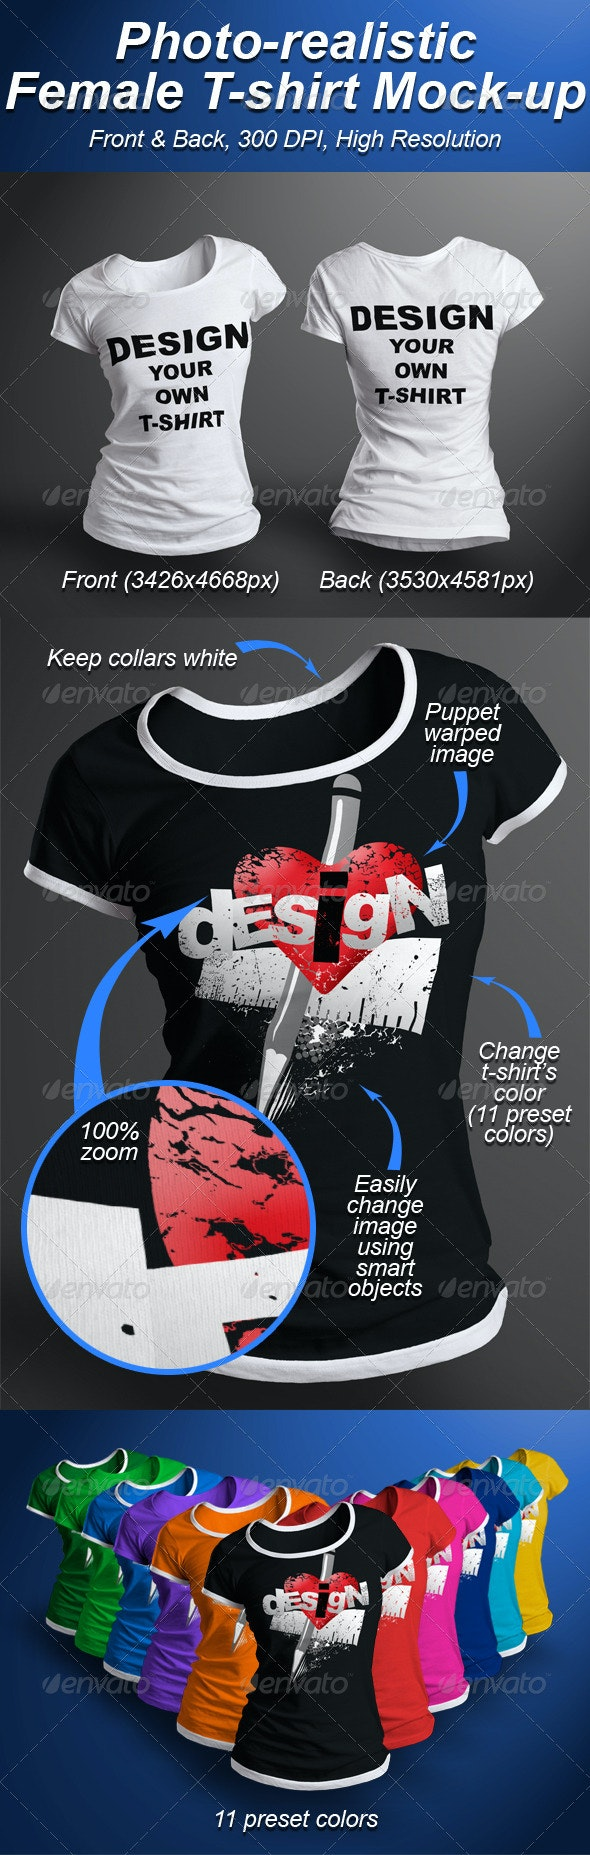 Female T-shirt Mock-up Photorealistic 3D Look - T-shirts Apparel